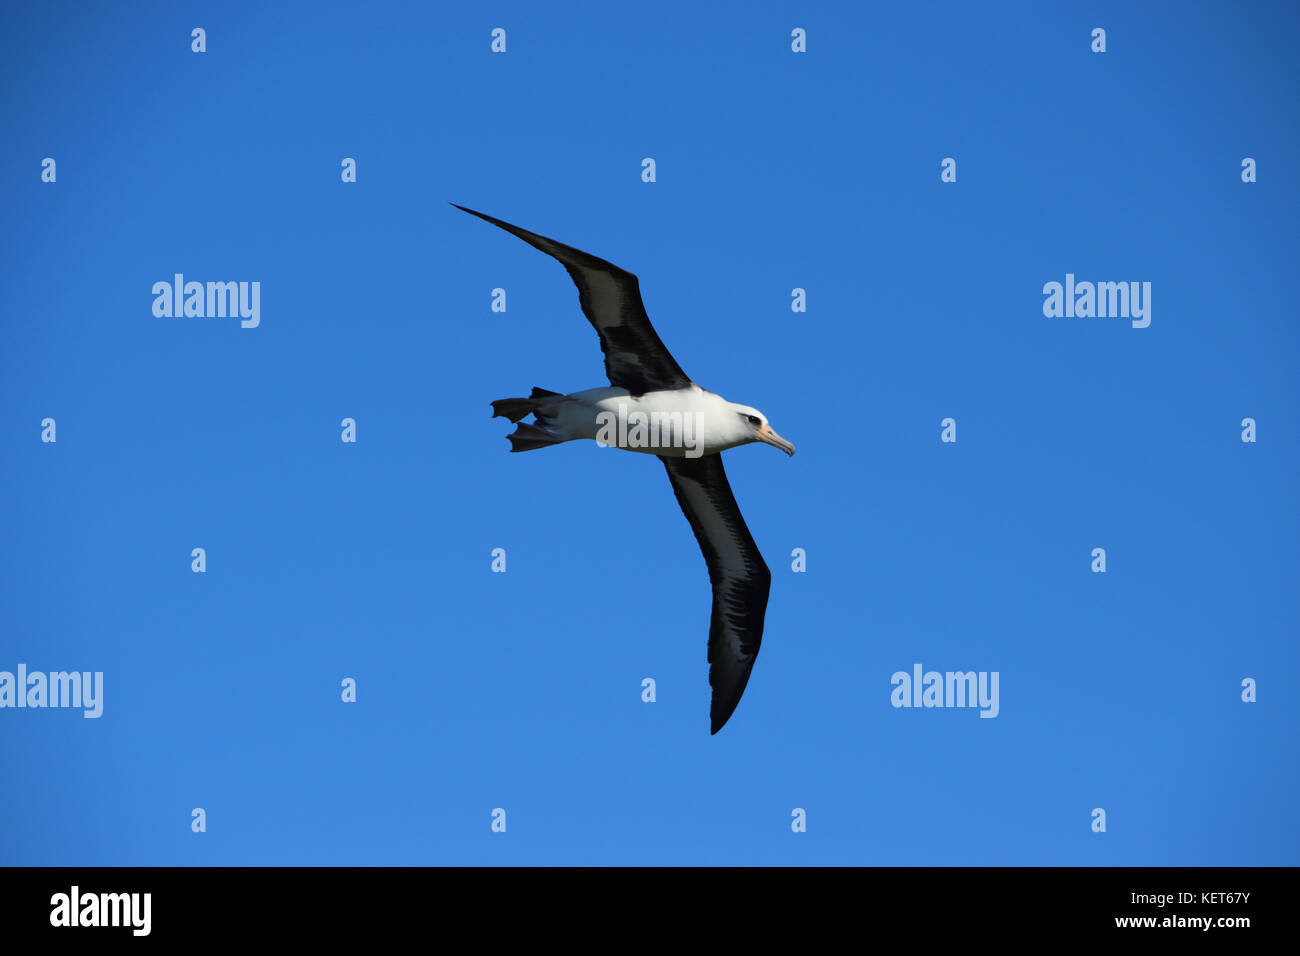 Albatross Nesting Ground near Ka'ena Point, Oahu Hawaii - Stock Image